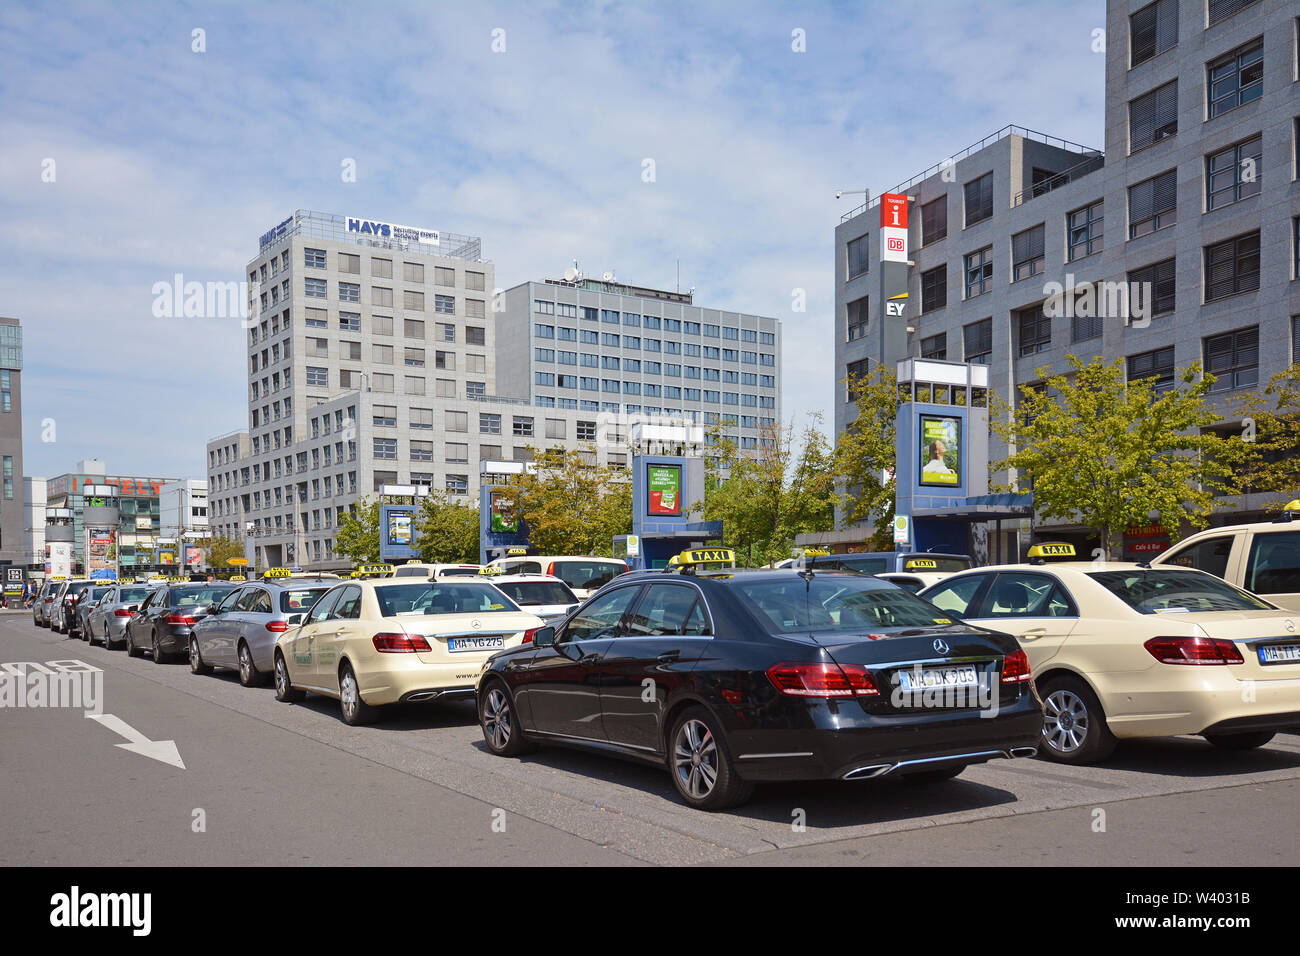 Mannheim, Germany - July 2019: Many taxi cars in different colors parking and waiting for passangers in front of Mannheim main station - Stock Image